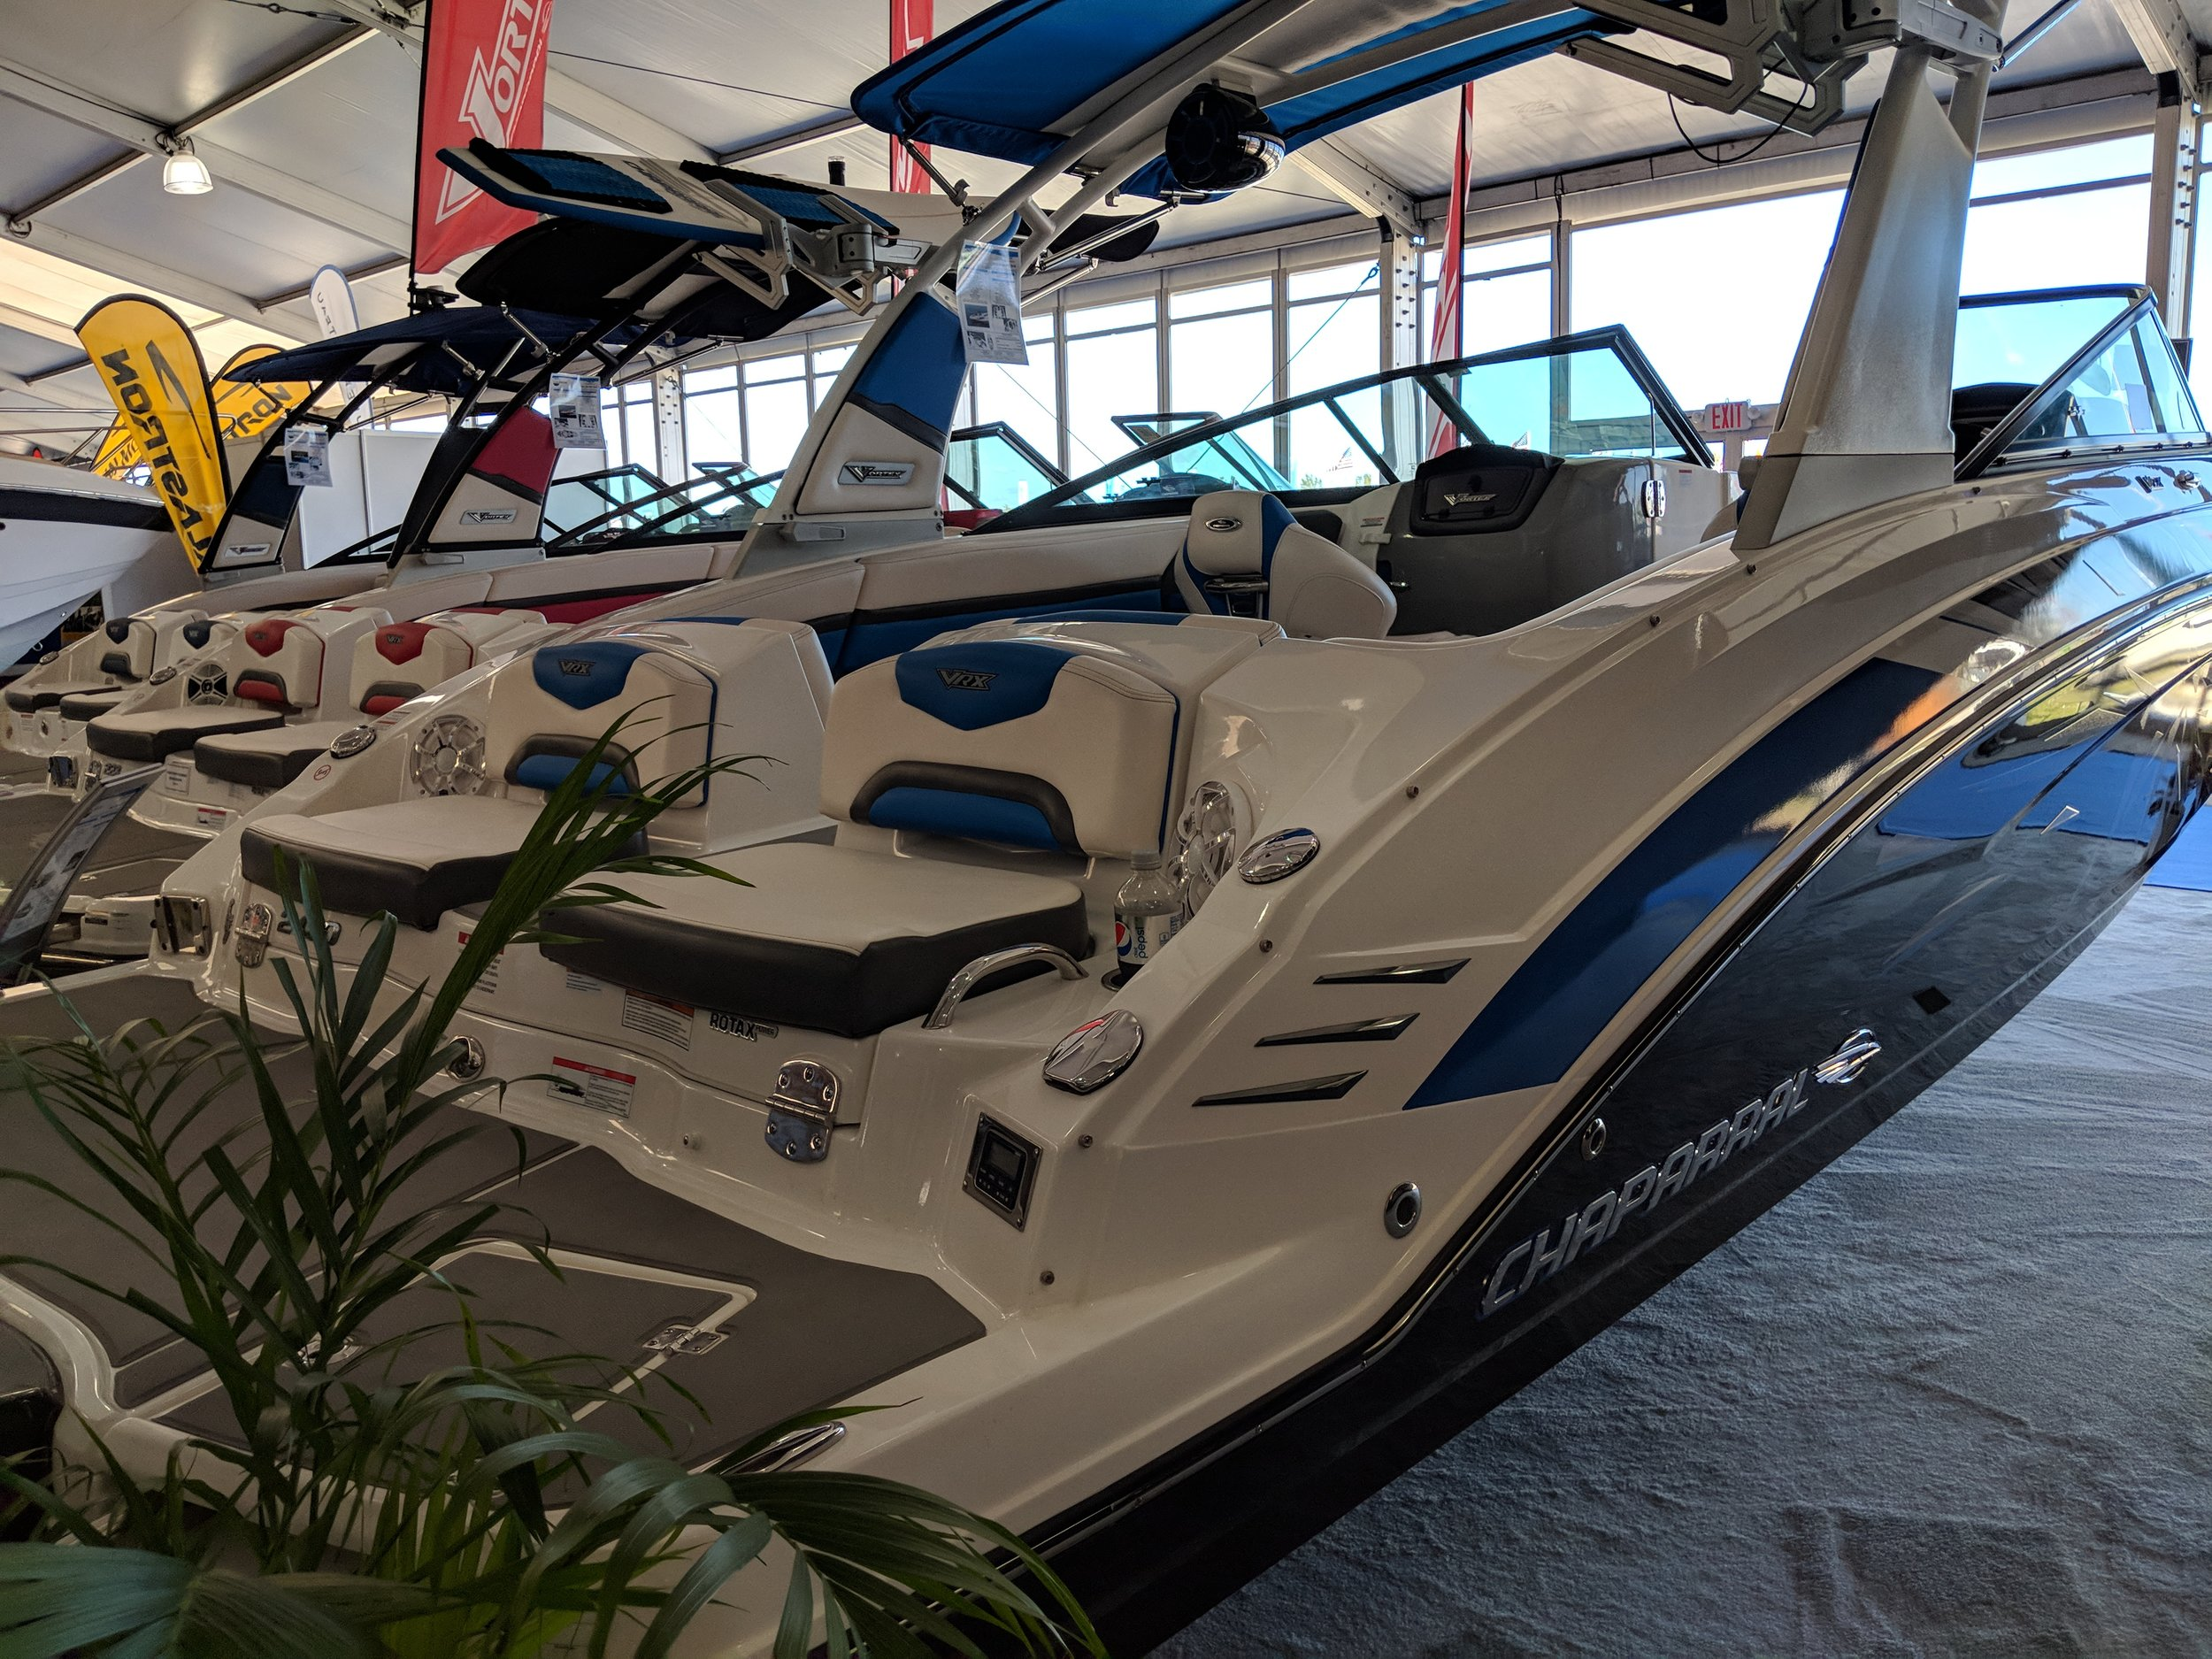 More reverse seating, dumb design in many ways. It's a wake board boat and a deck boat all in one.